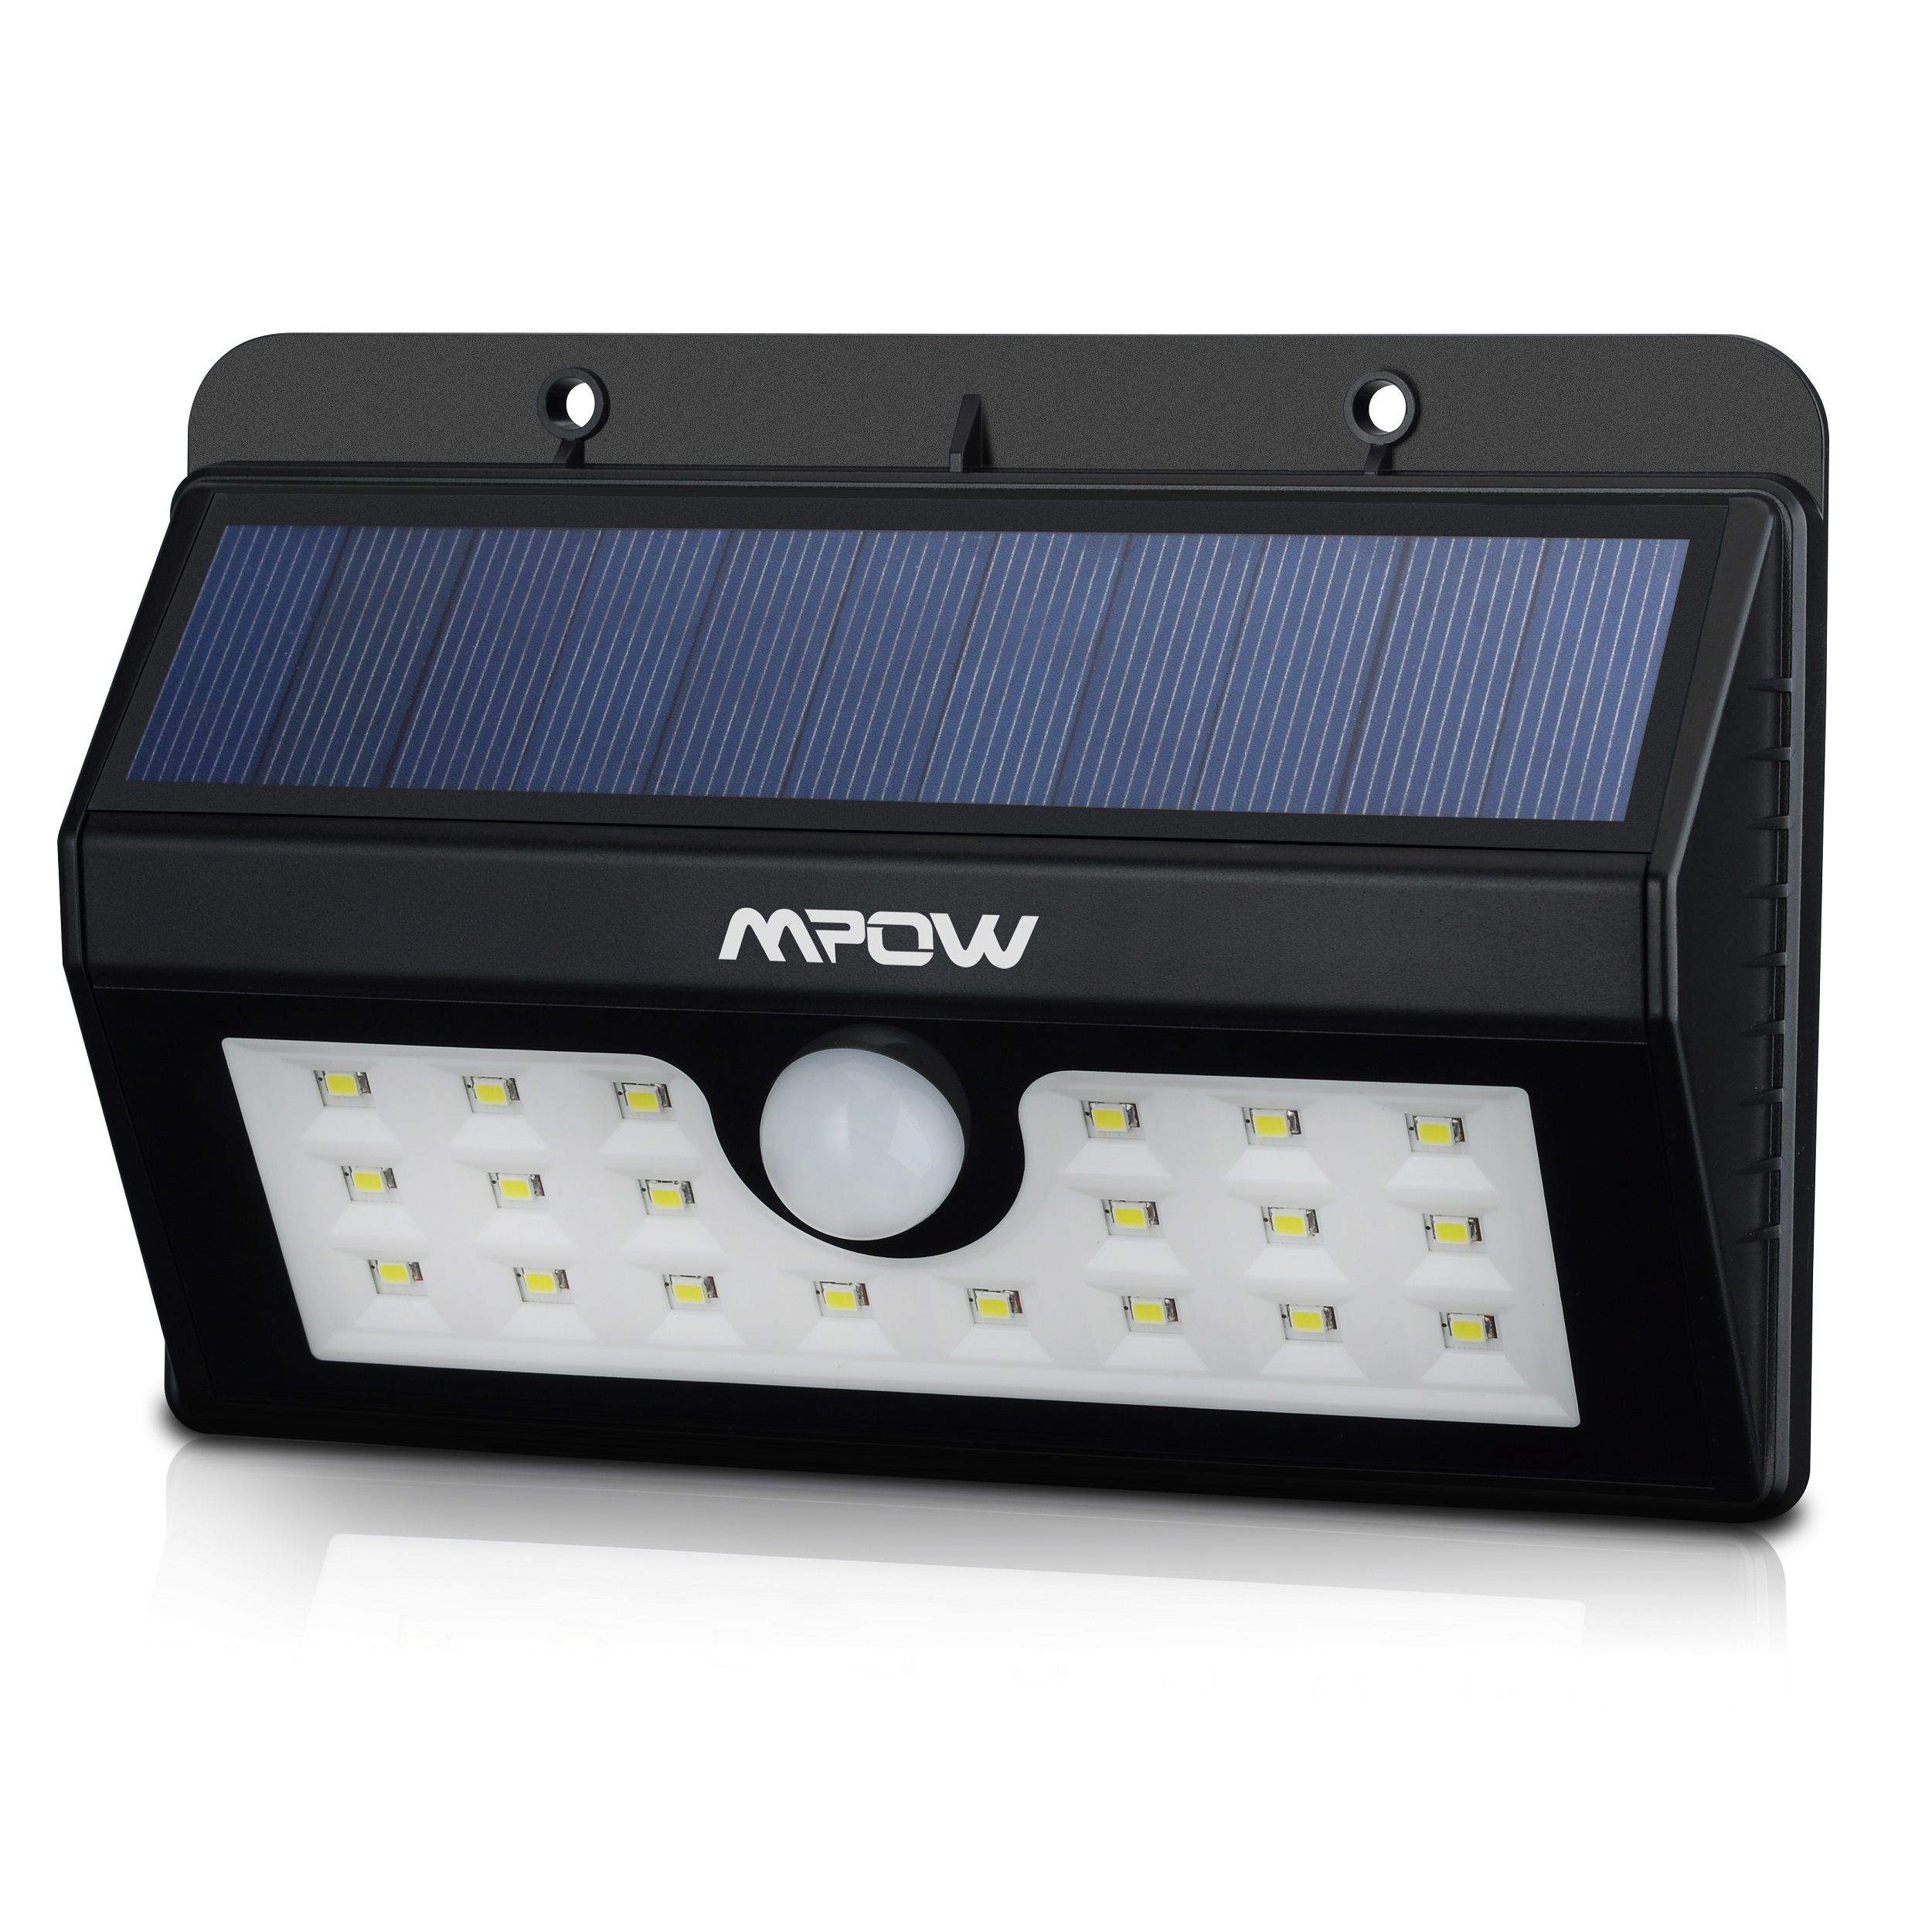 solar panel outdoor lights outdoor lighting mpow super bright 20 led solar powered wireless weatherproof outdoor light motion with intelligent modes